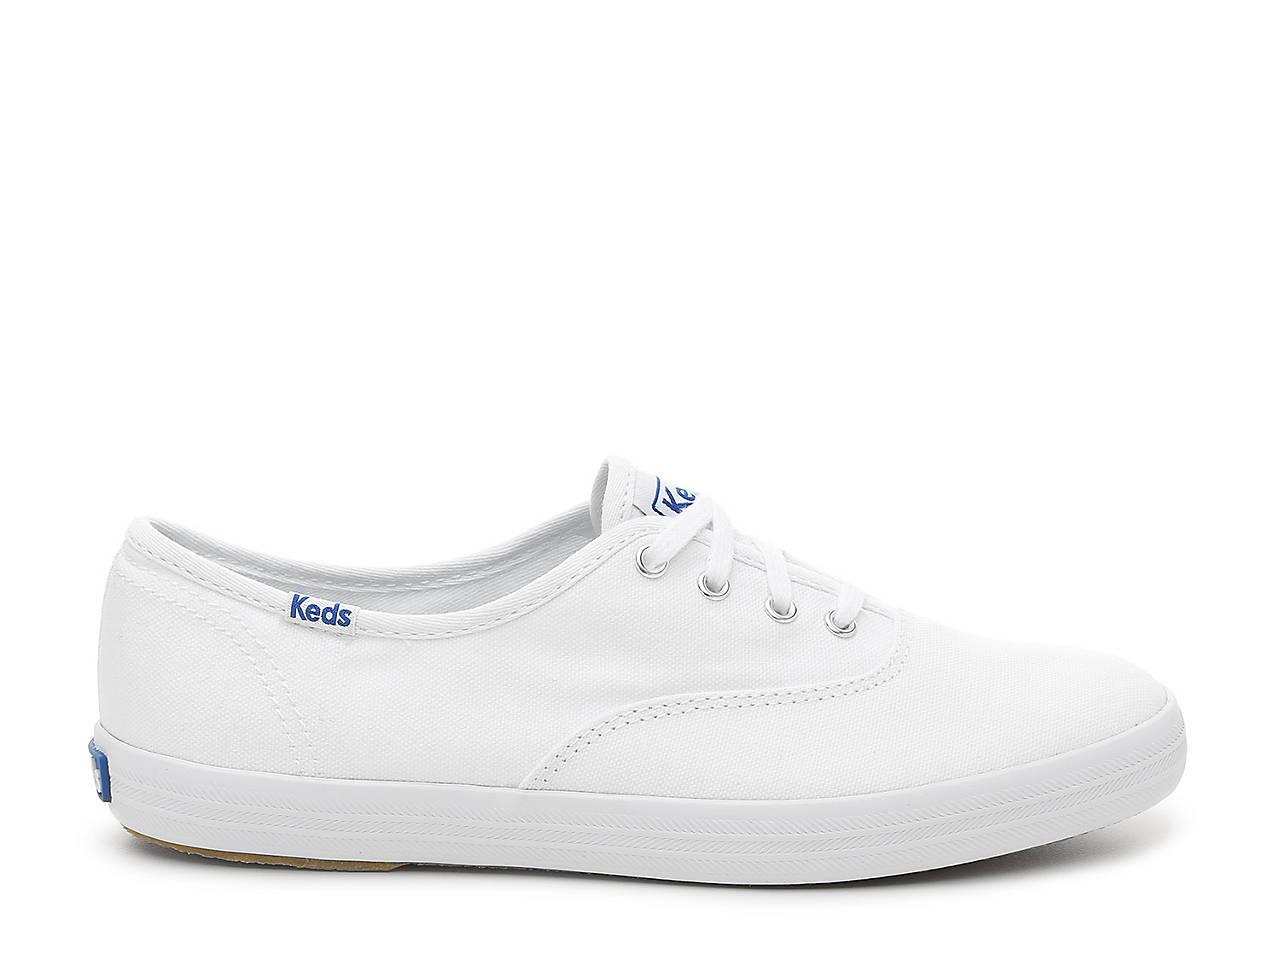 Official andries.ml Site - Shop the Keds shoes outlet for the best deals on Keds sneakers, including the classic Champion Original white sneakers.